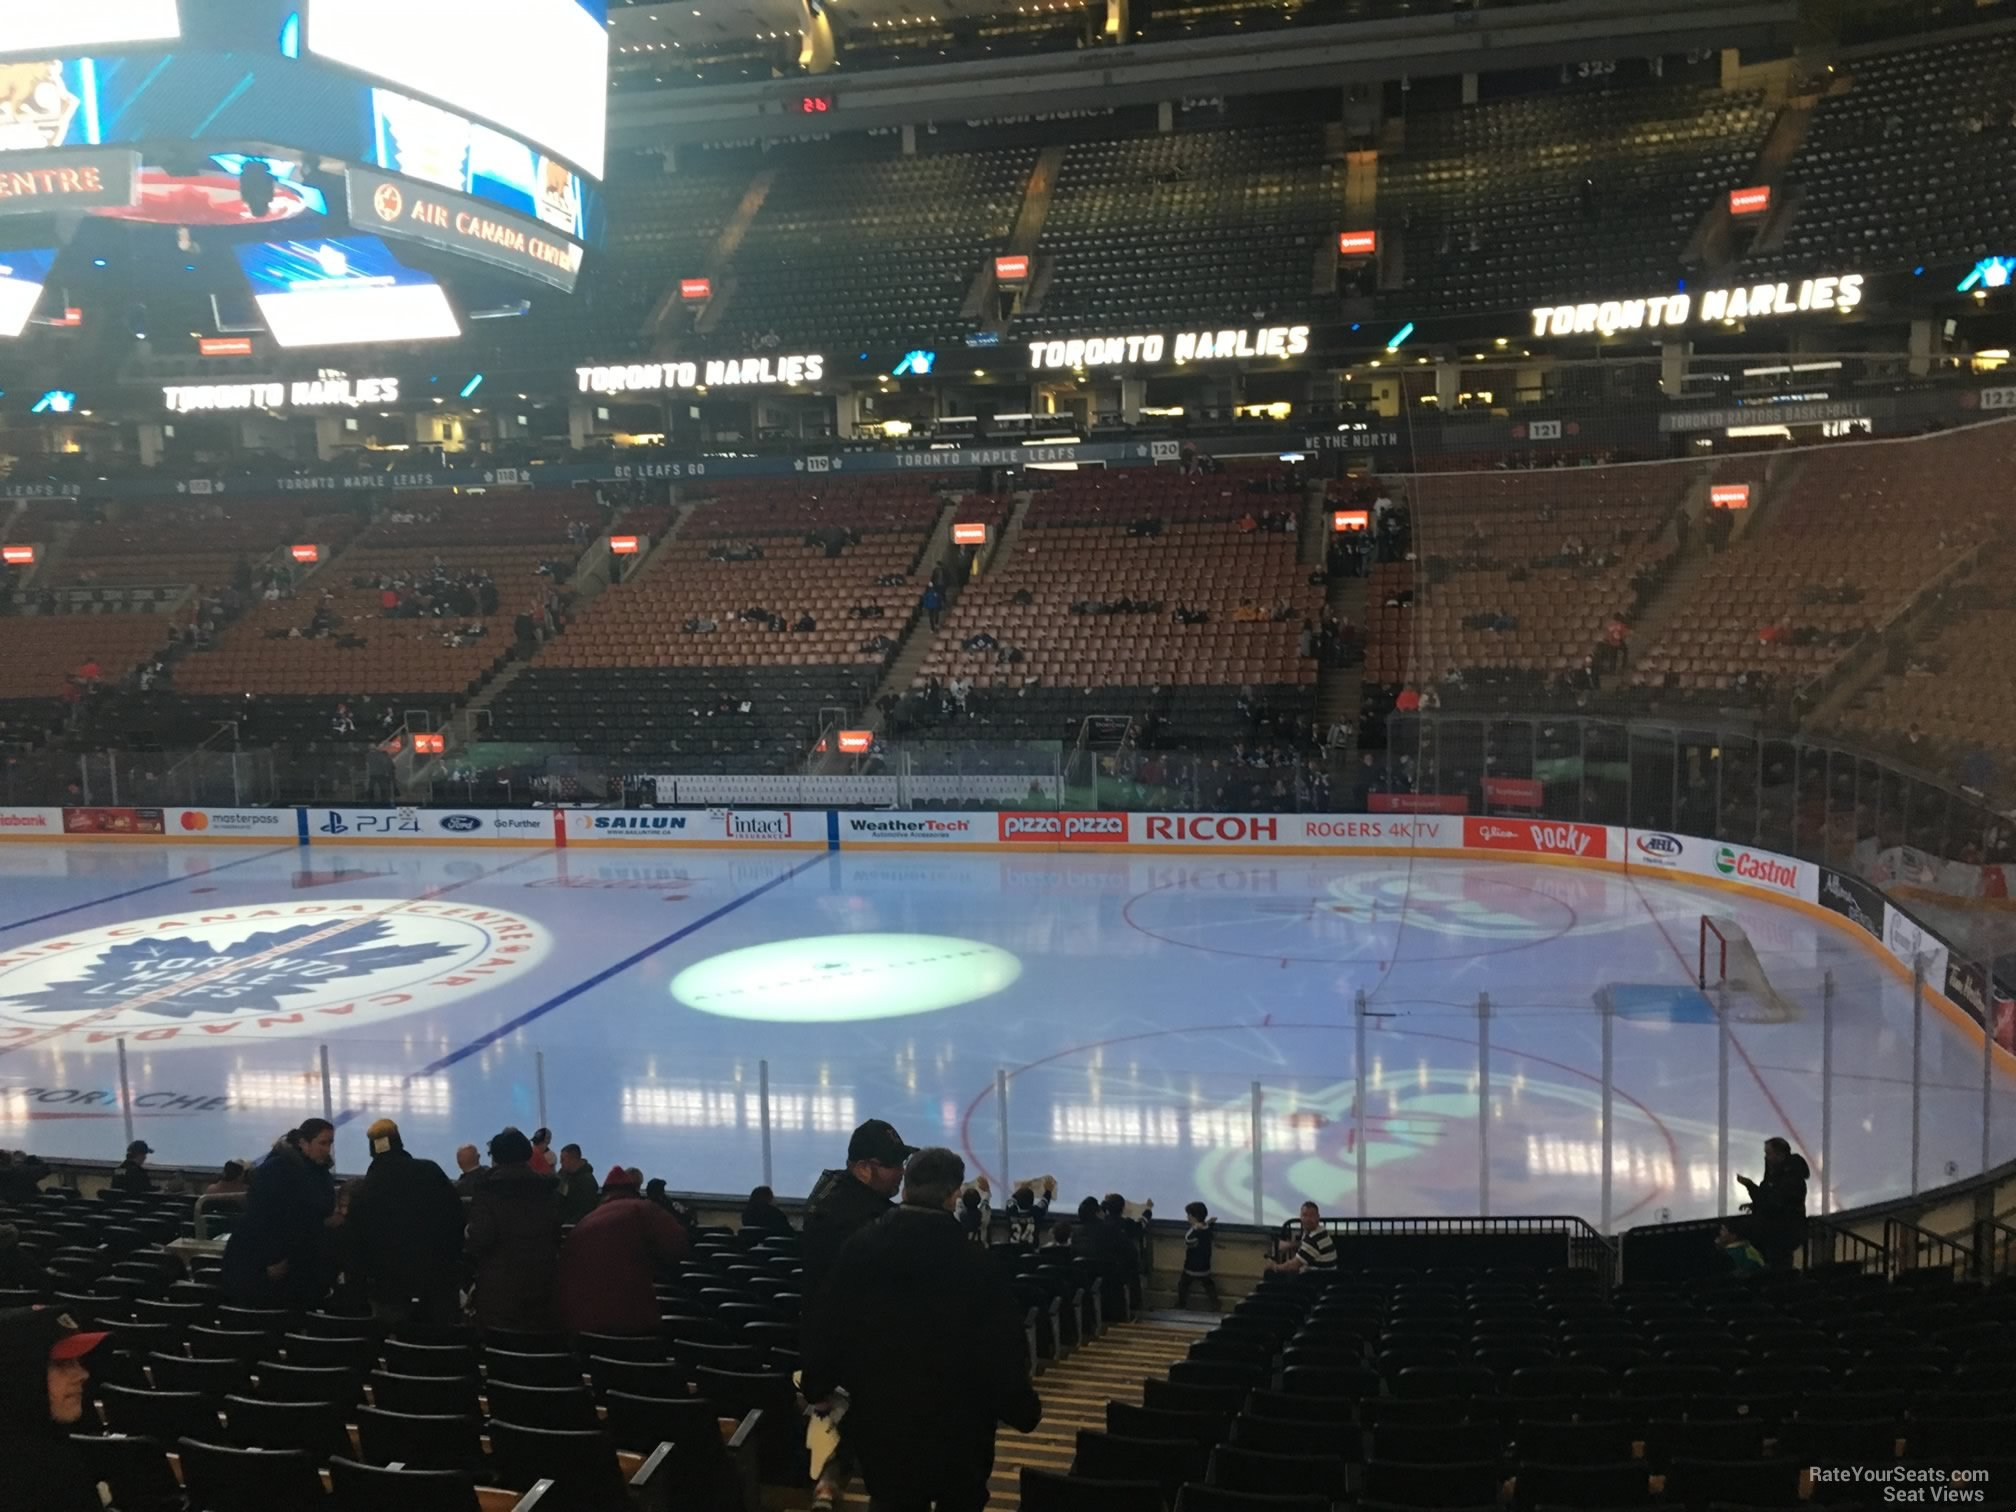 Toronto Maple Leafs Seat View for Scotiabank Arena Section 106, Row 20